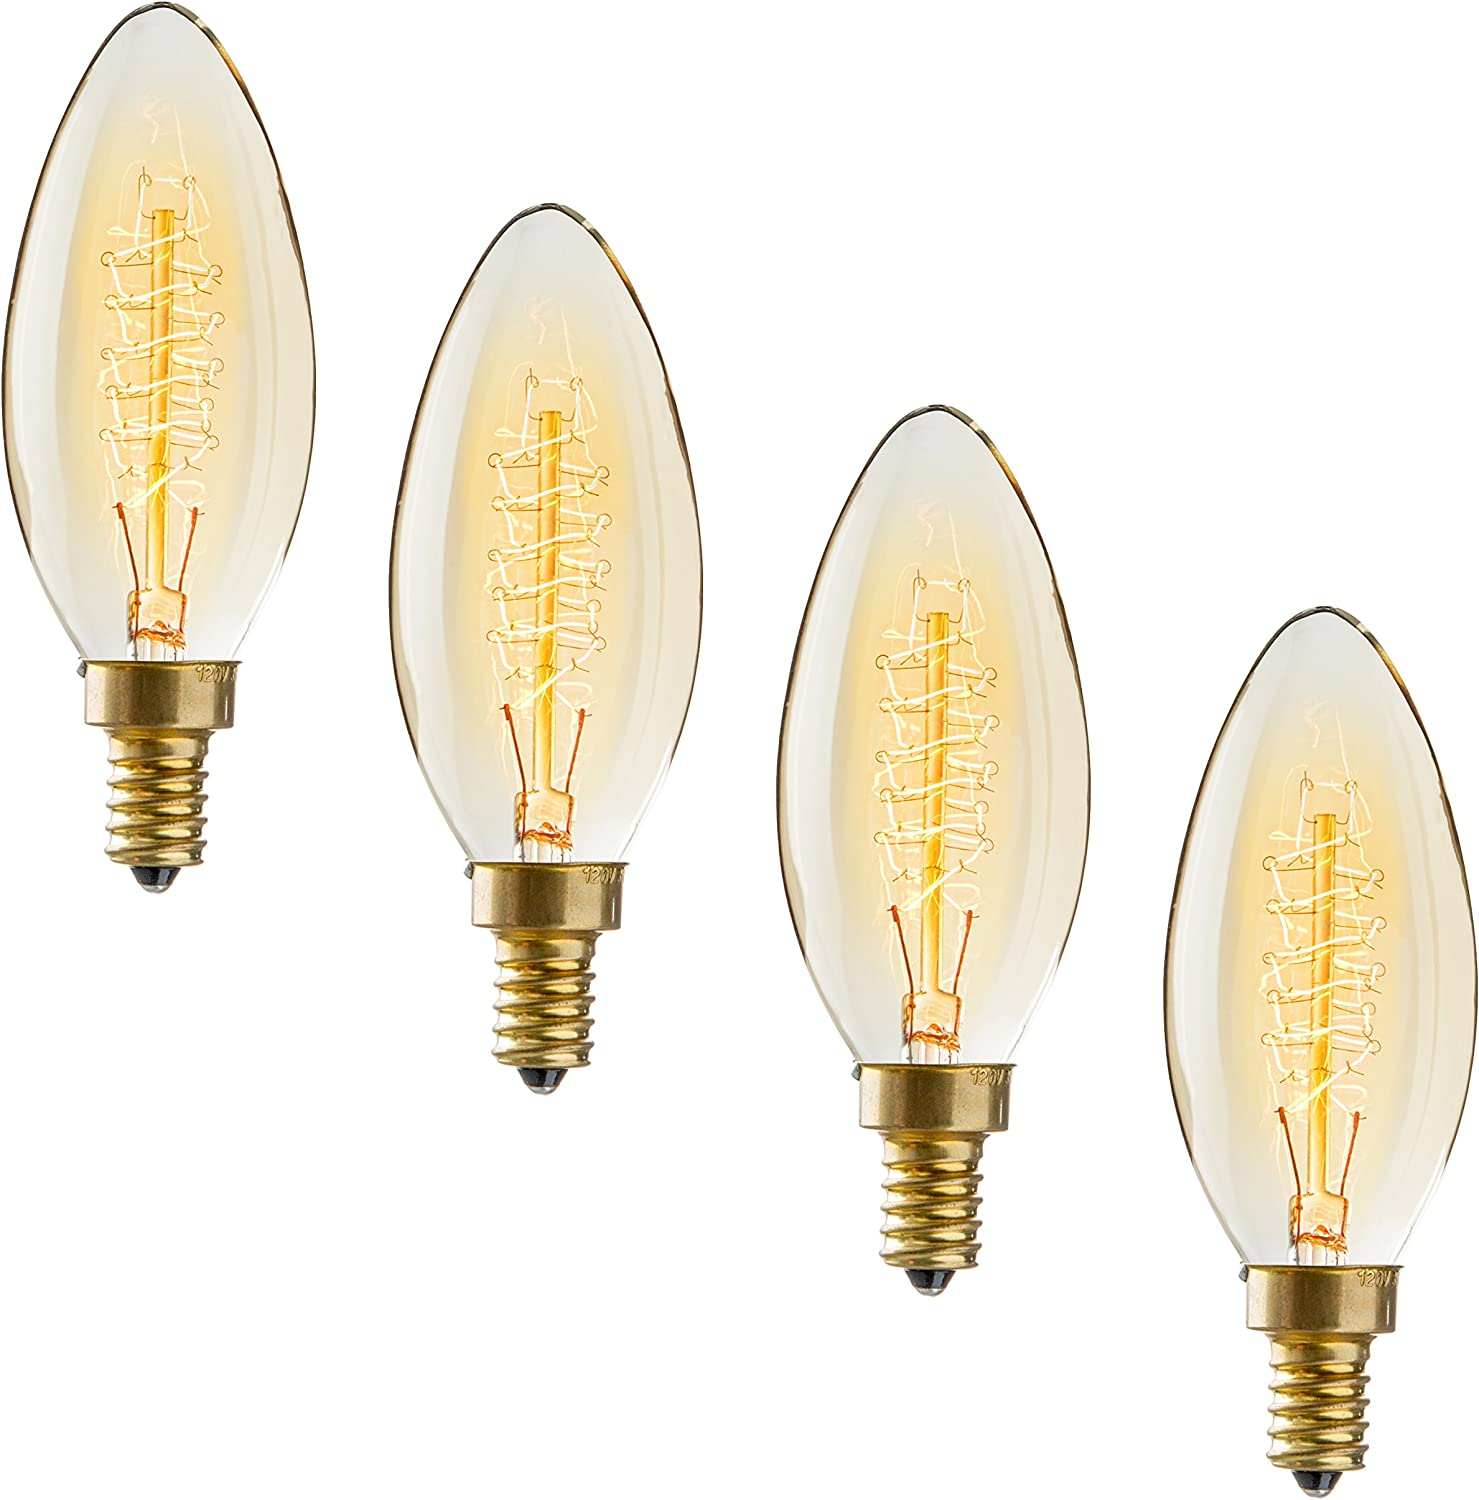 1-12 Pack E27 Screw Cap Filament Vintage Edison Style Cafe Bedroom Bulb Dimmable